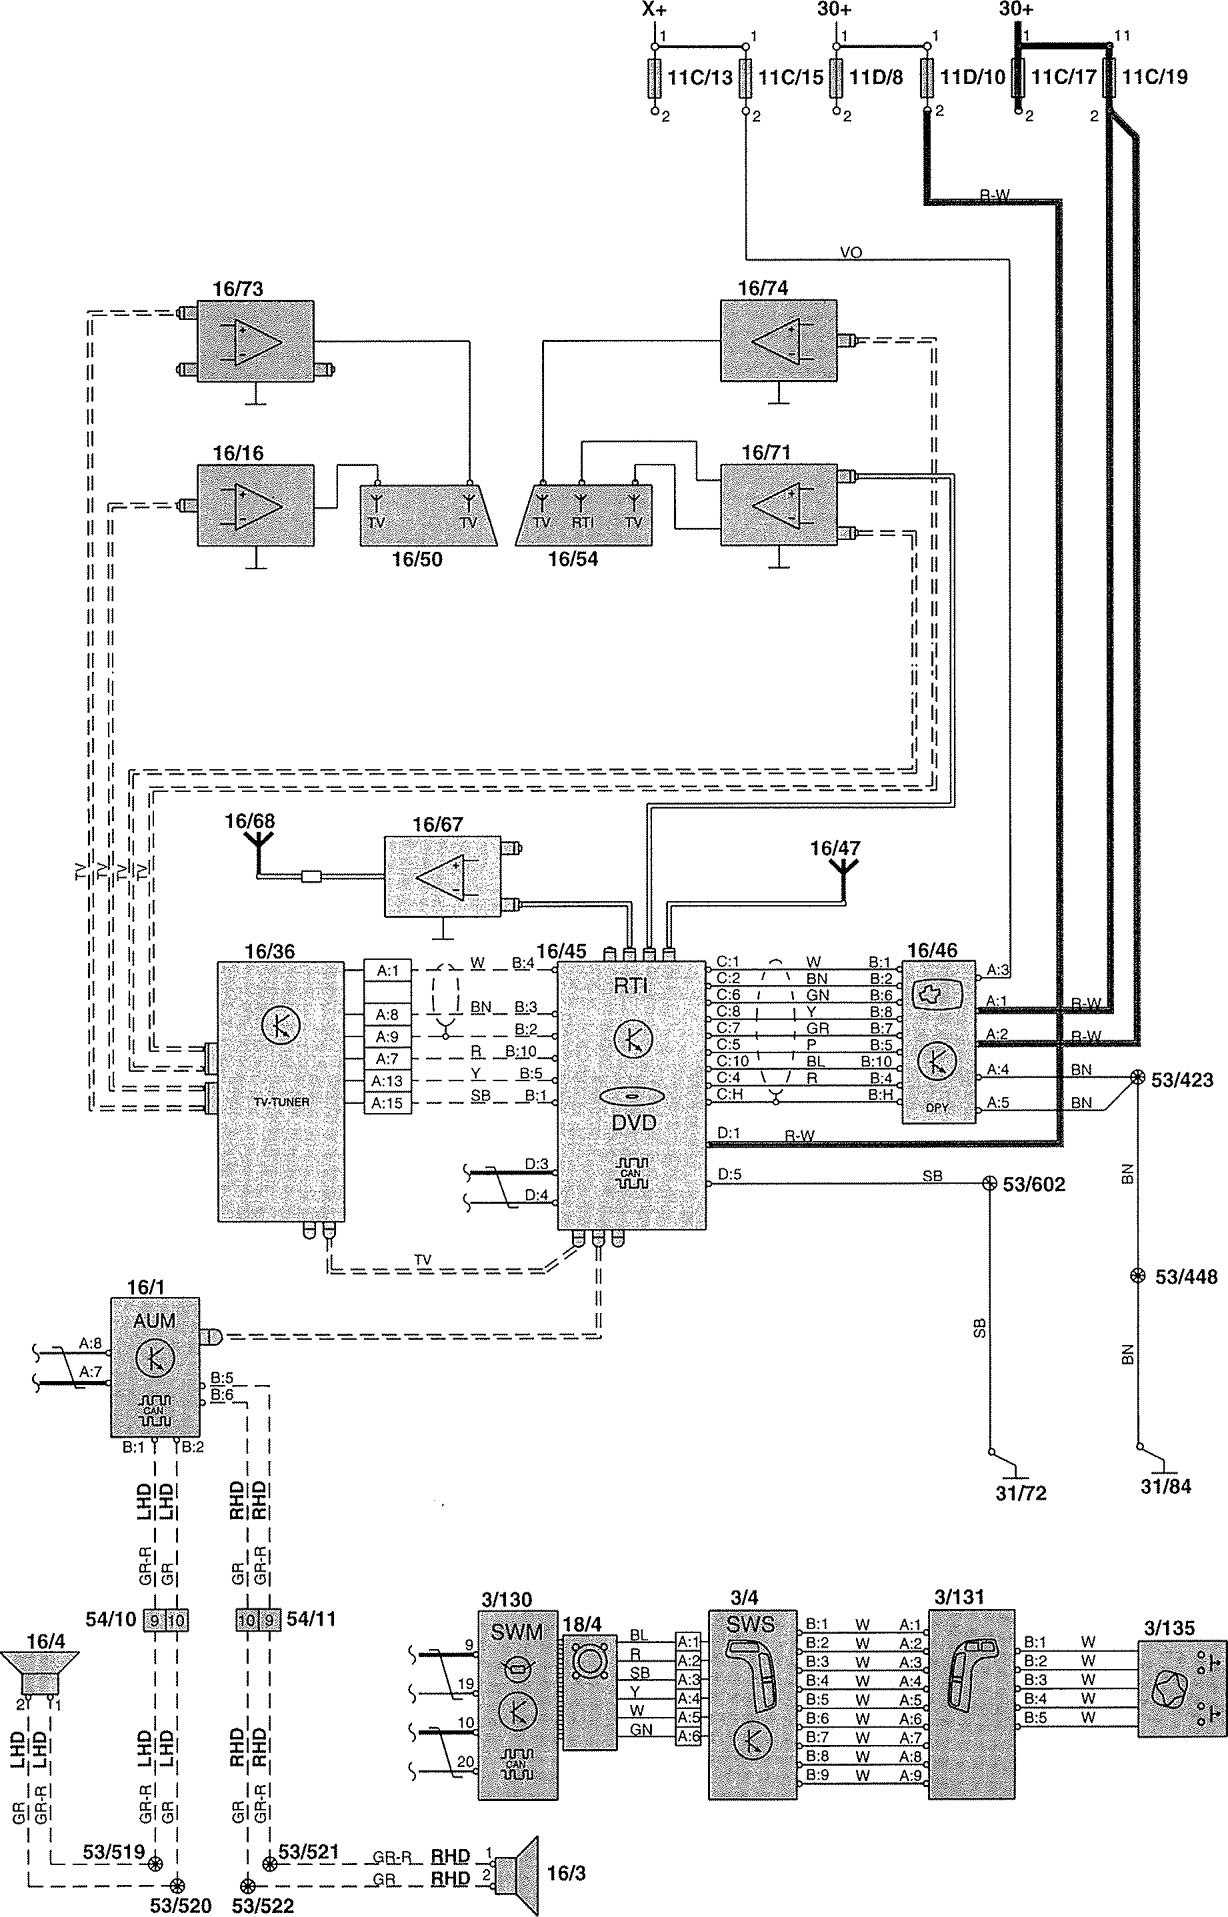 2004 Volvo V70 Wiring Diagram Another Blog About 1998 Ignition Switch Diagrams